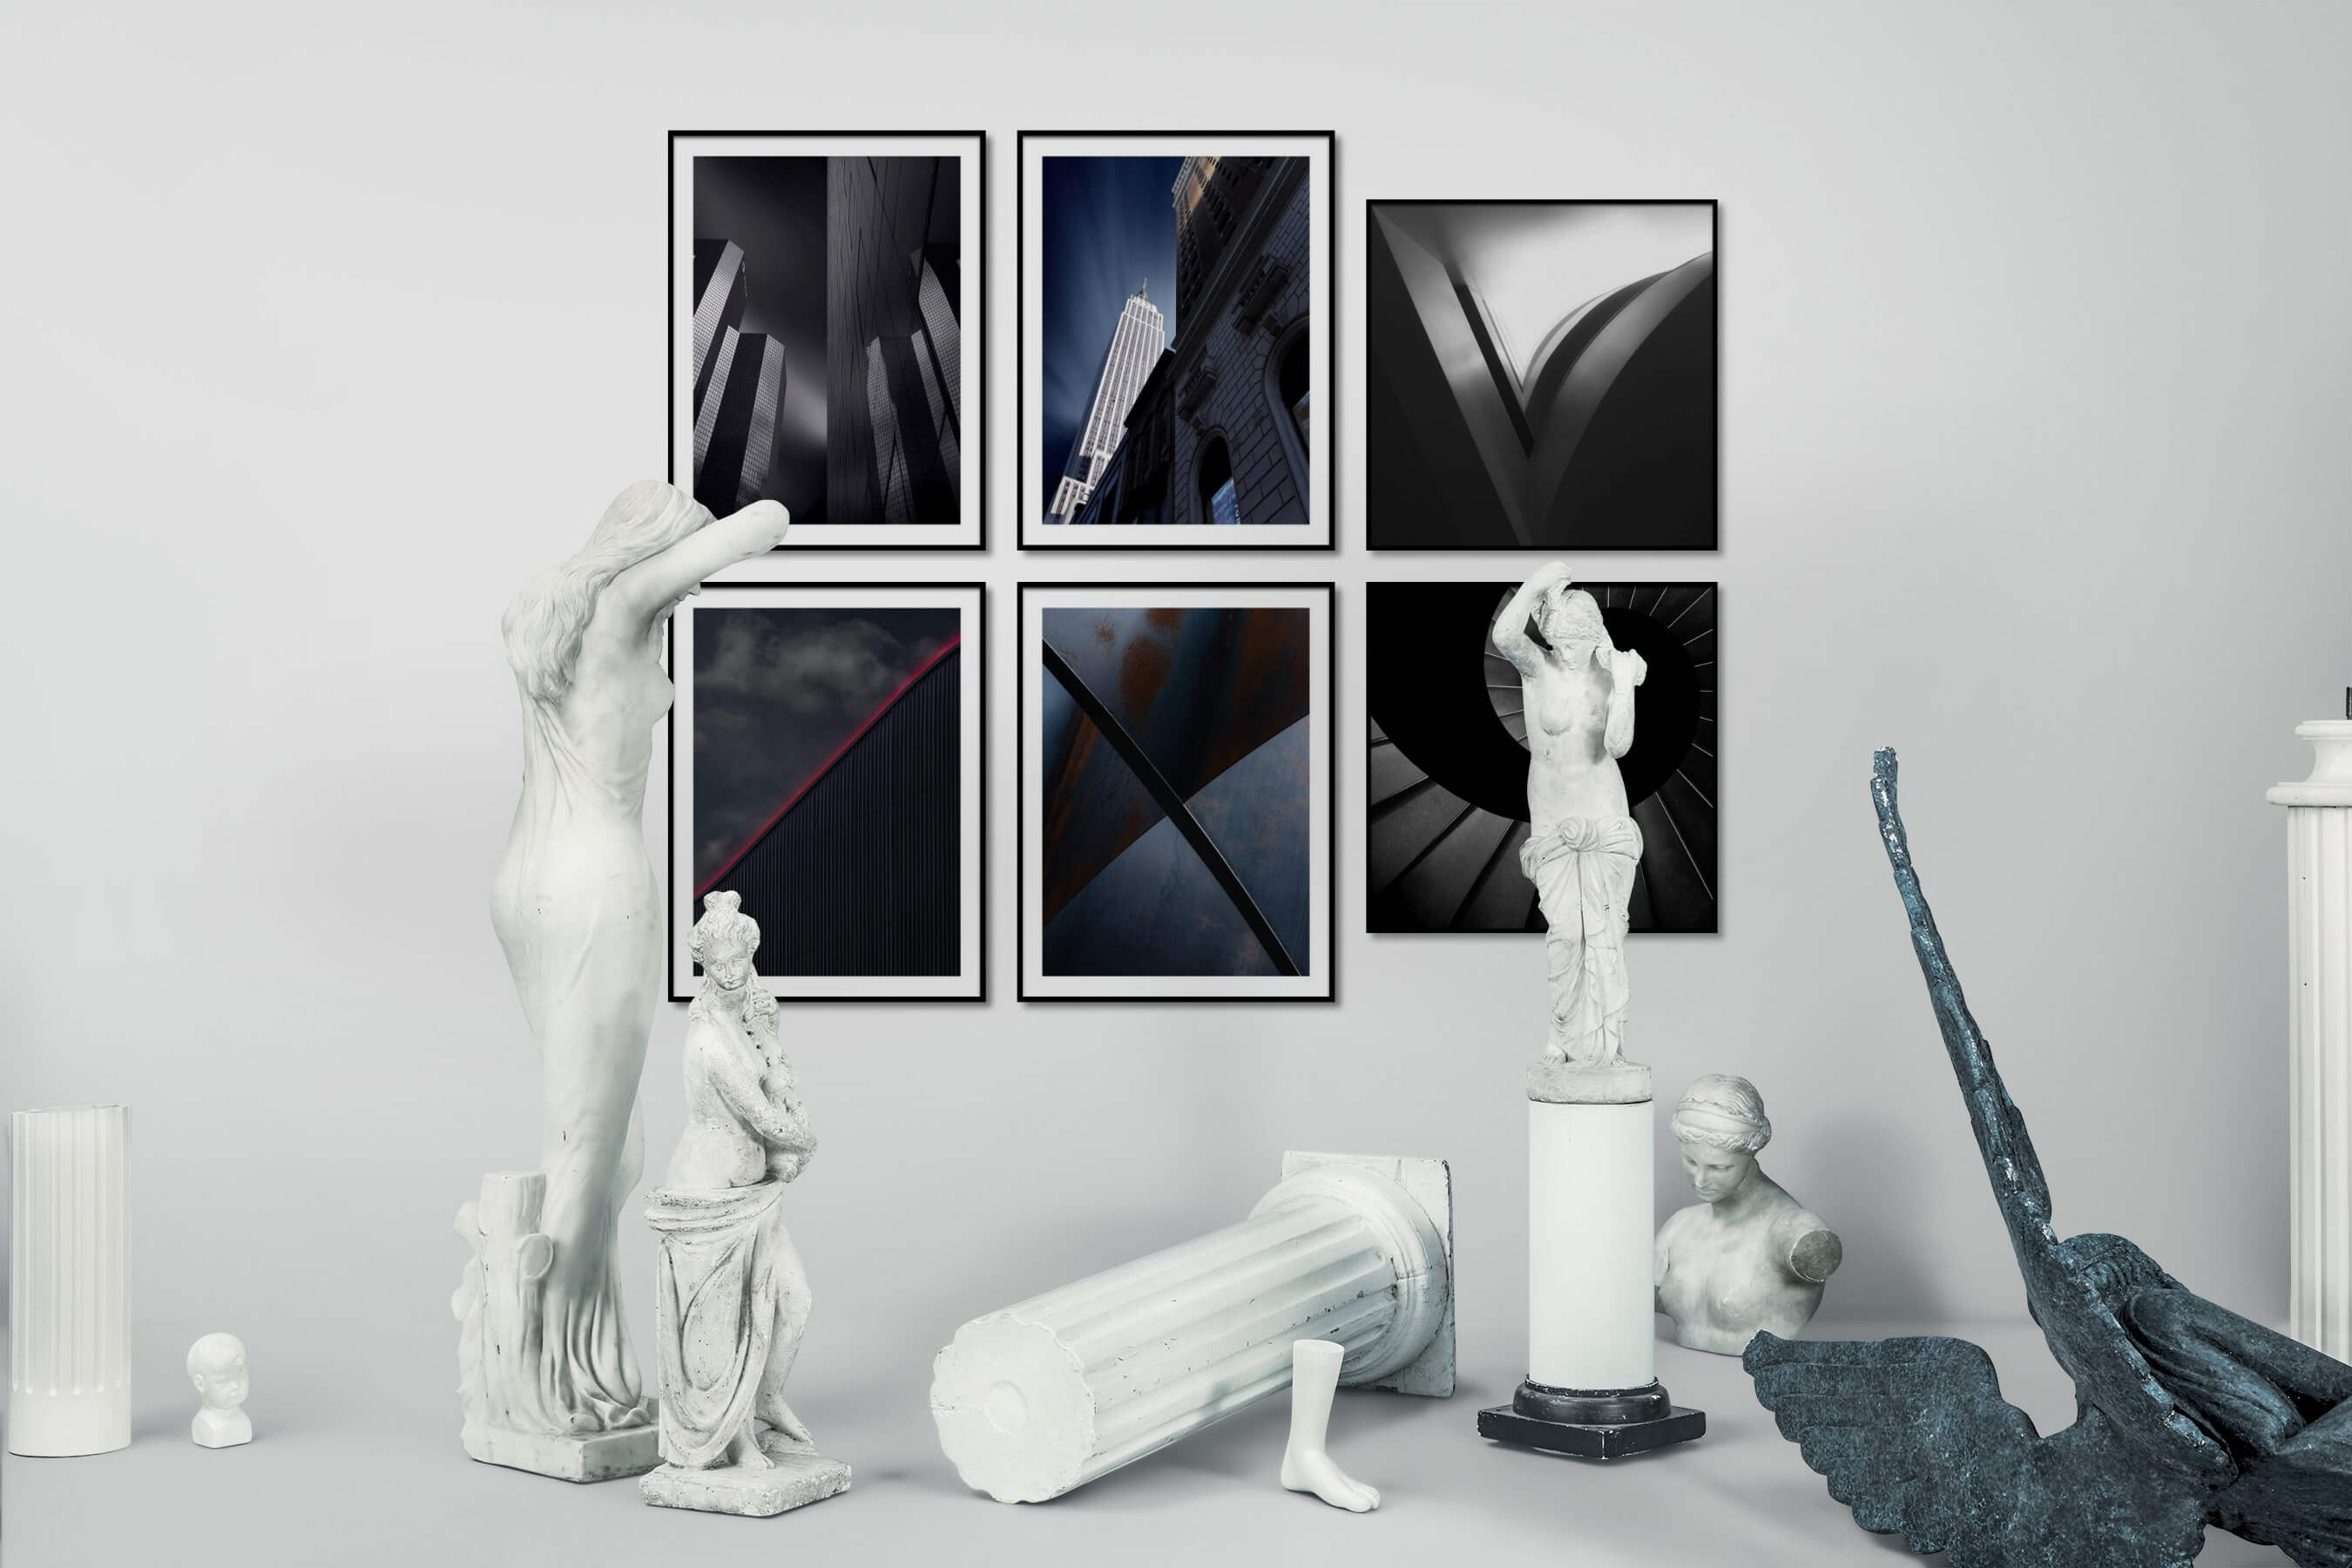 Gallery wall idea with six framed pictures arranged on a wall depicting Black & White, For the Moderate, City Life, Americana, and For the Minimalist